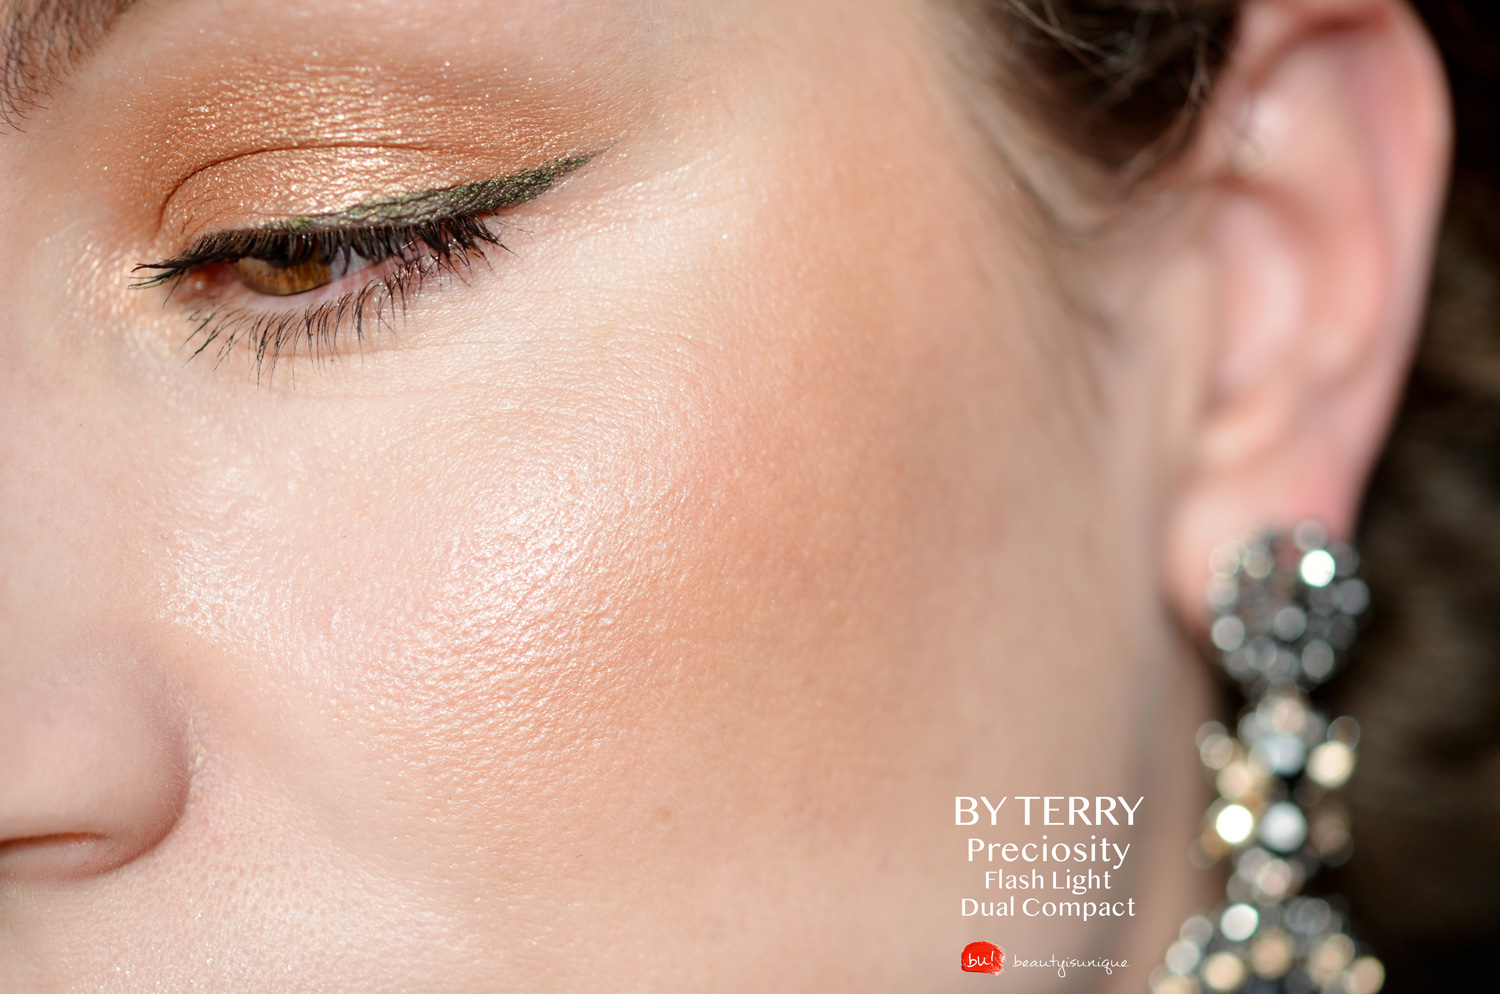 By-terry-preciosity-flash-light-swatches